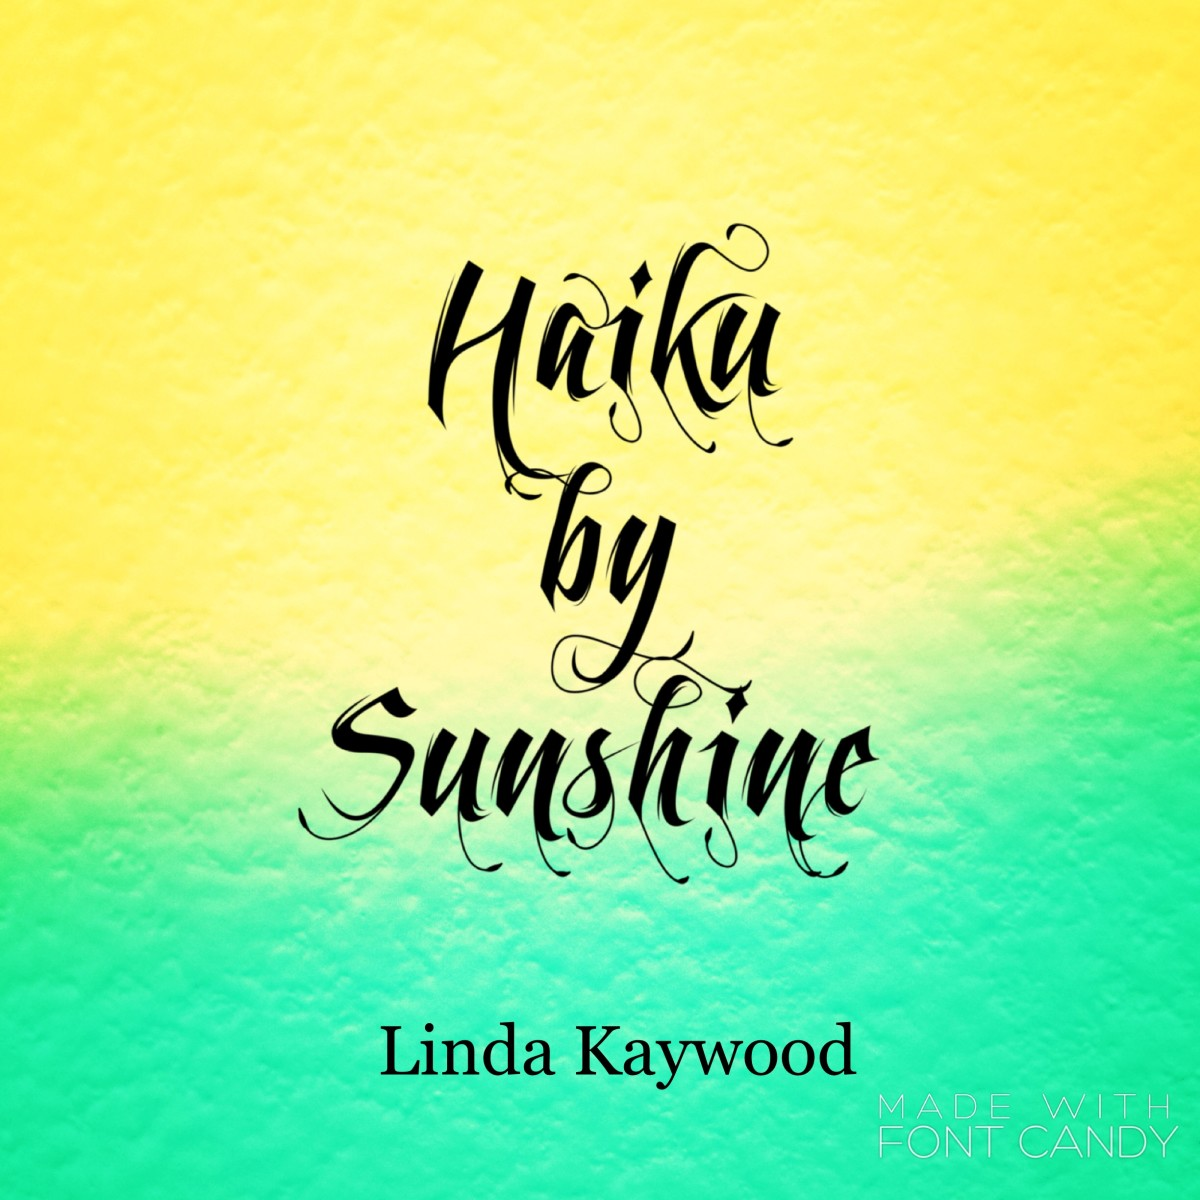 A book of haiku that will help bring on the sunshine!